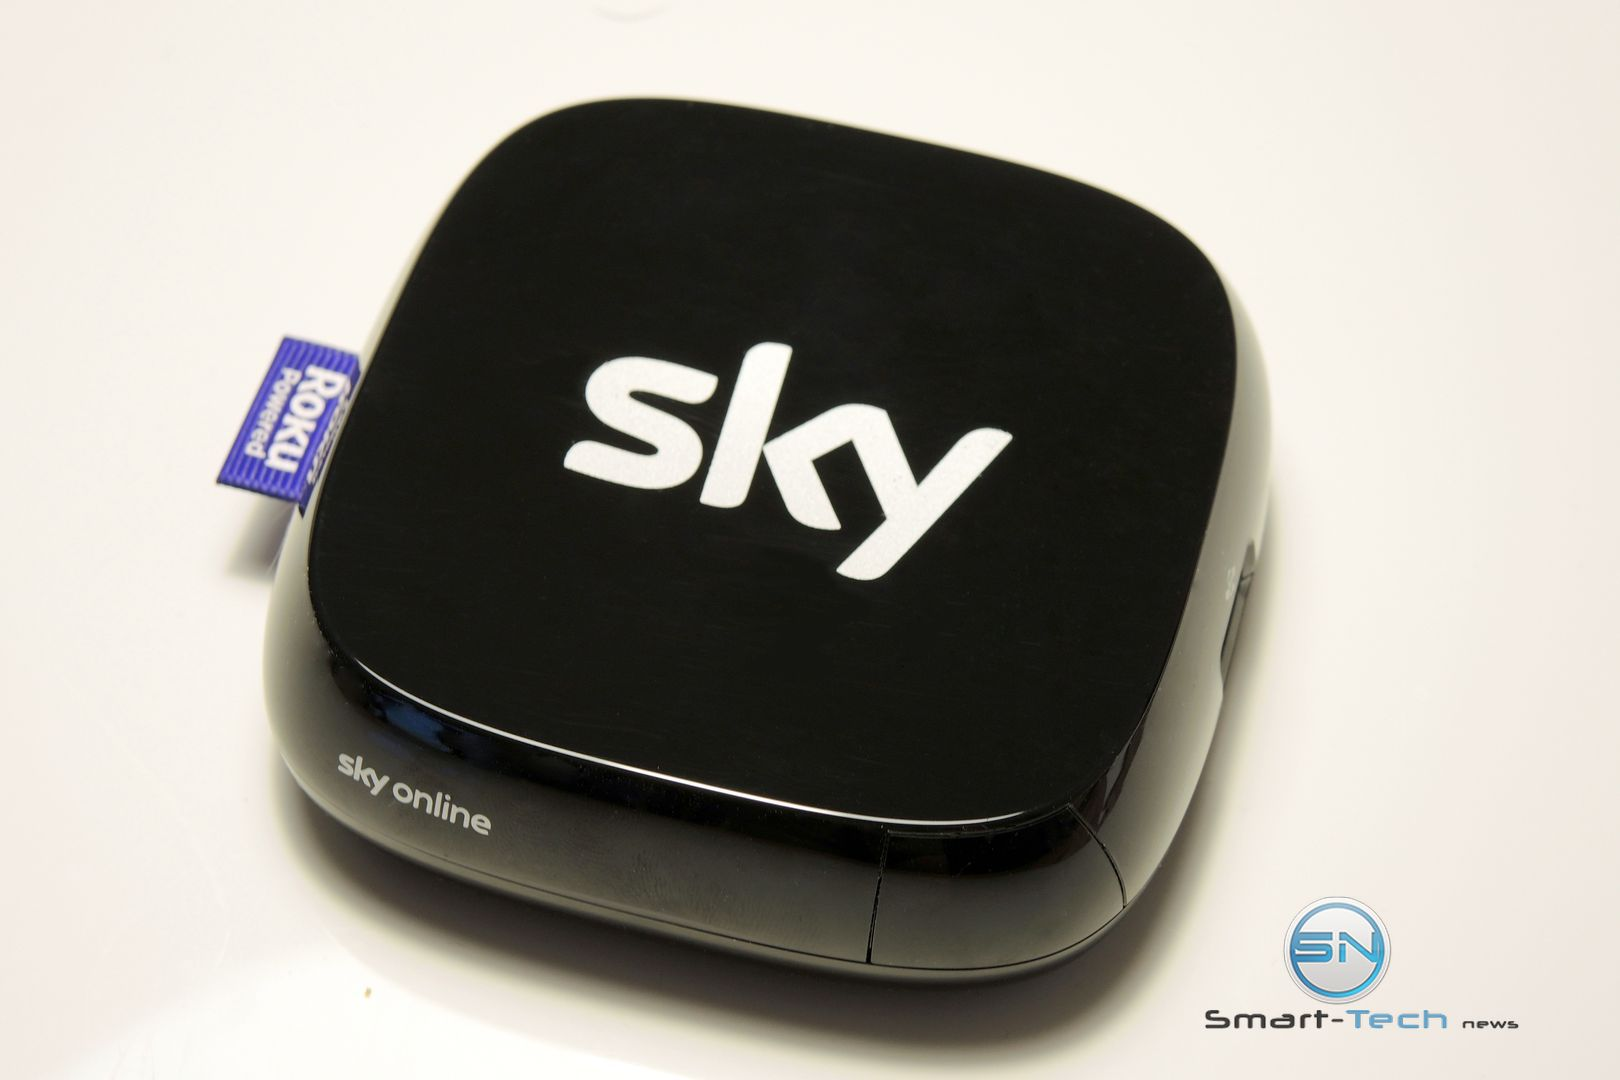 Sky Ticket - Onliine Box - SmartTechNews